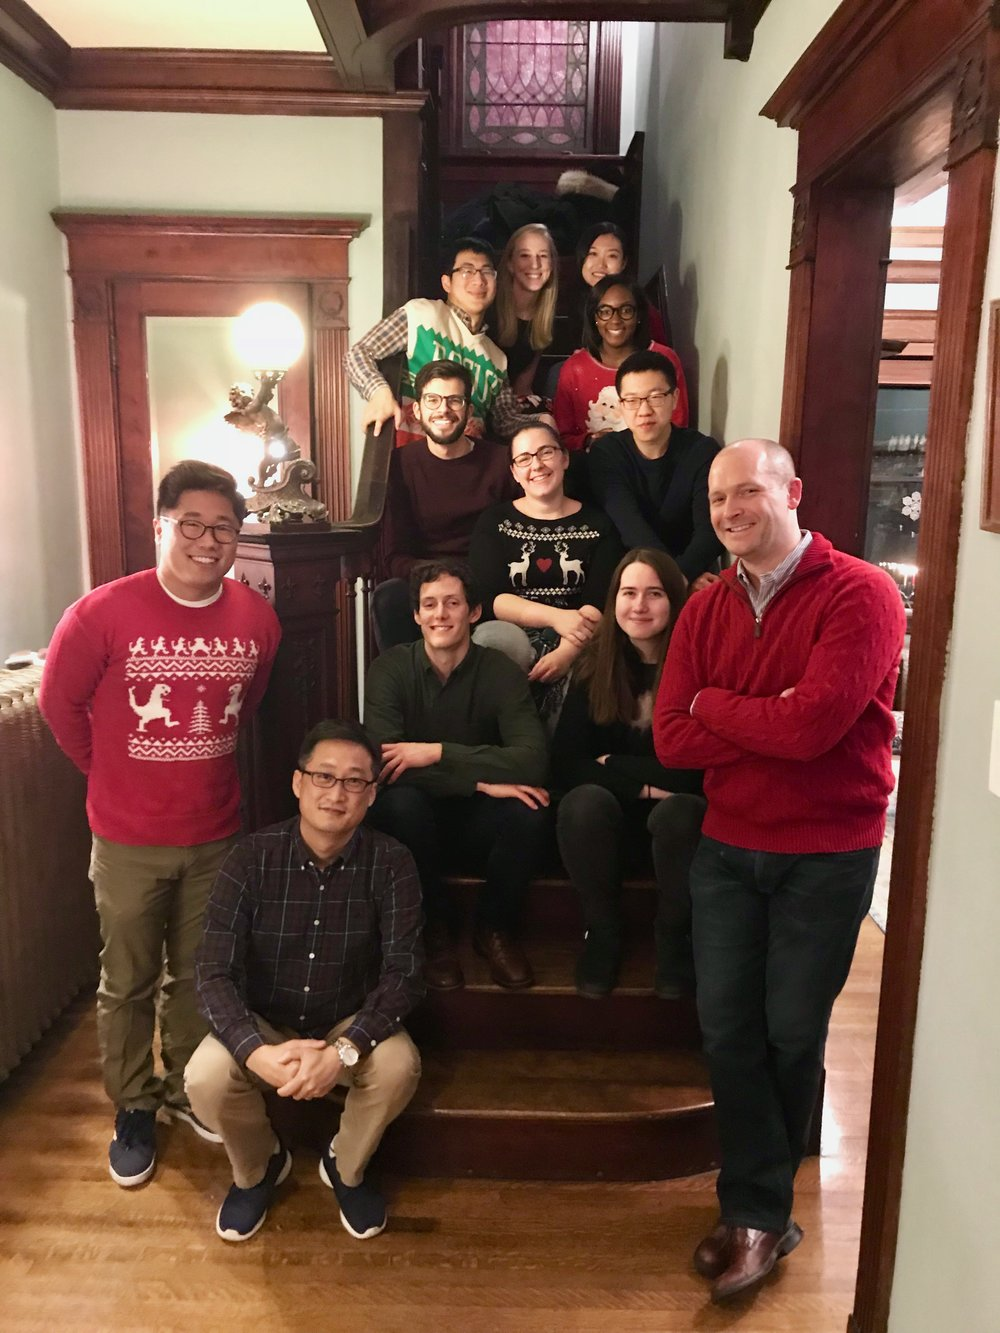 December 2018 - 2nd annual Yi-Gabel labs holiday party